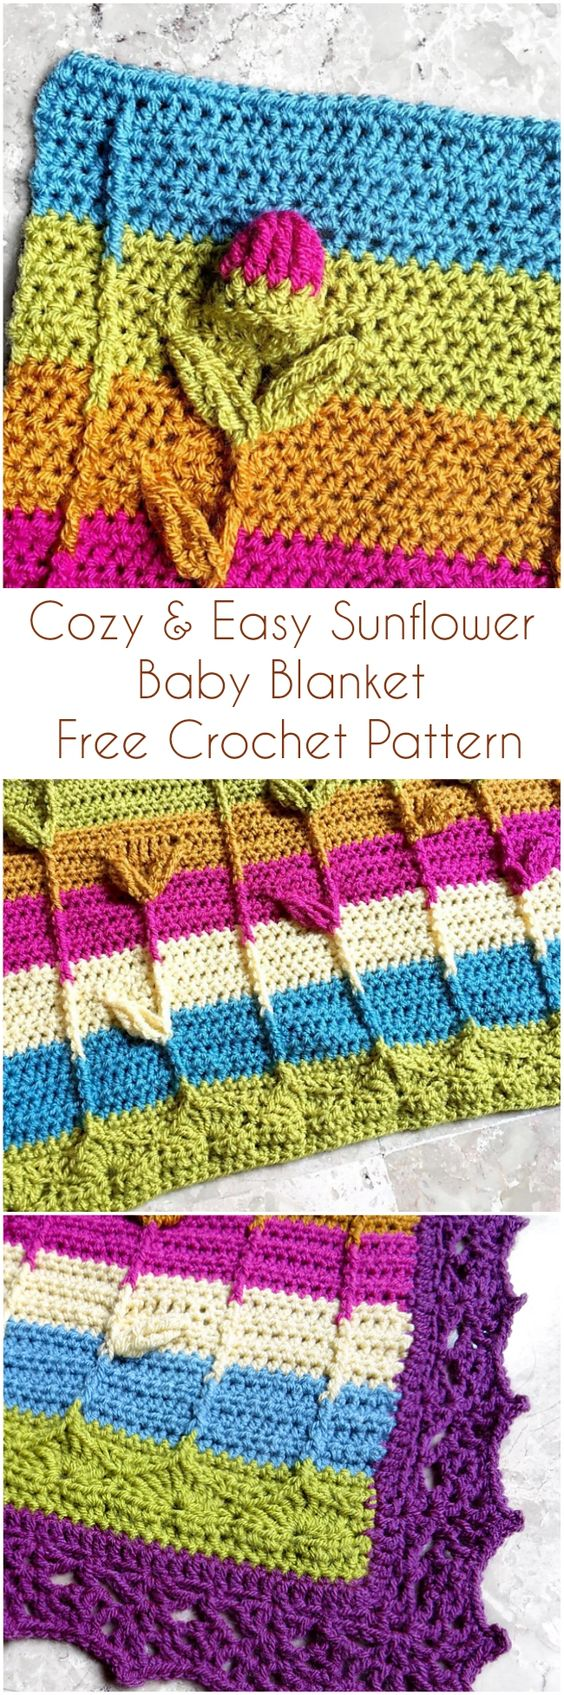 Cozy & Easy Sunflower Baby Blanket Free Crochet Pattern #sunflower #crochet #freecrochetpatterns #crochetpattern #babyblanket #craft #handmade